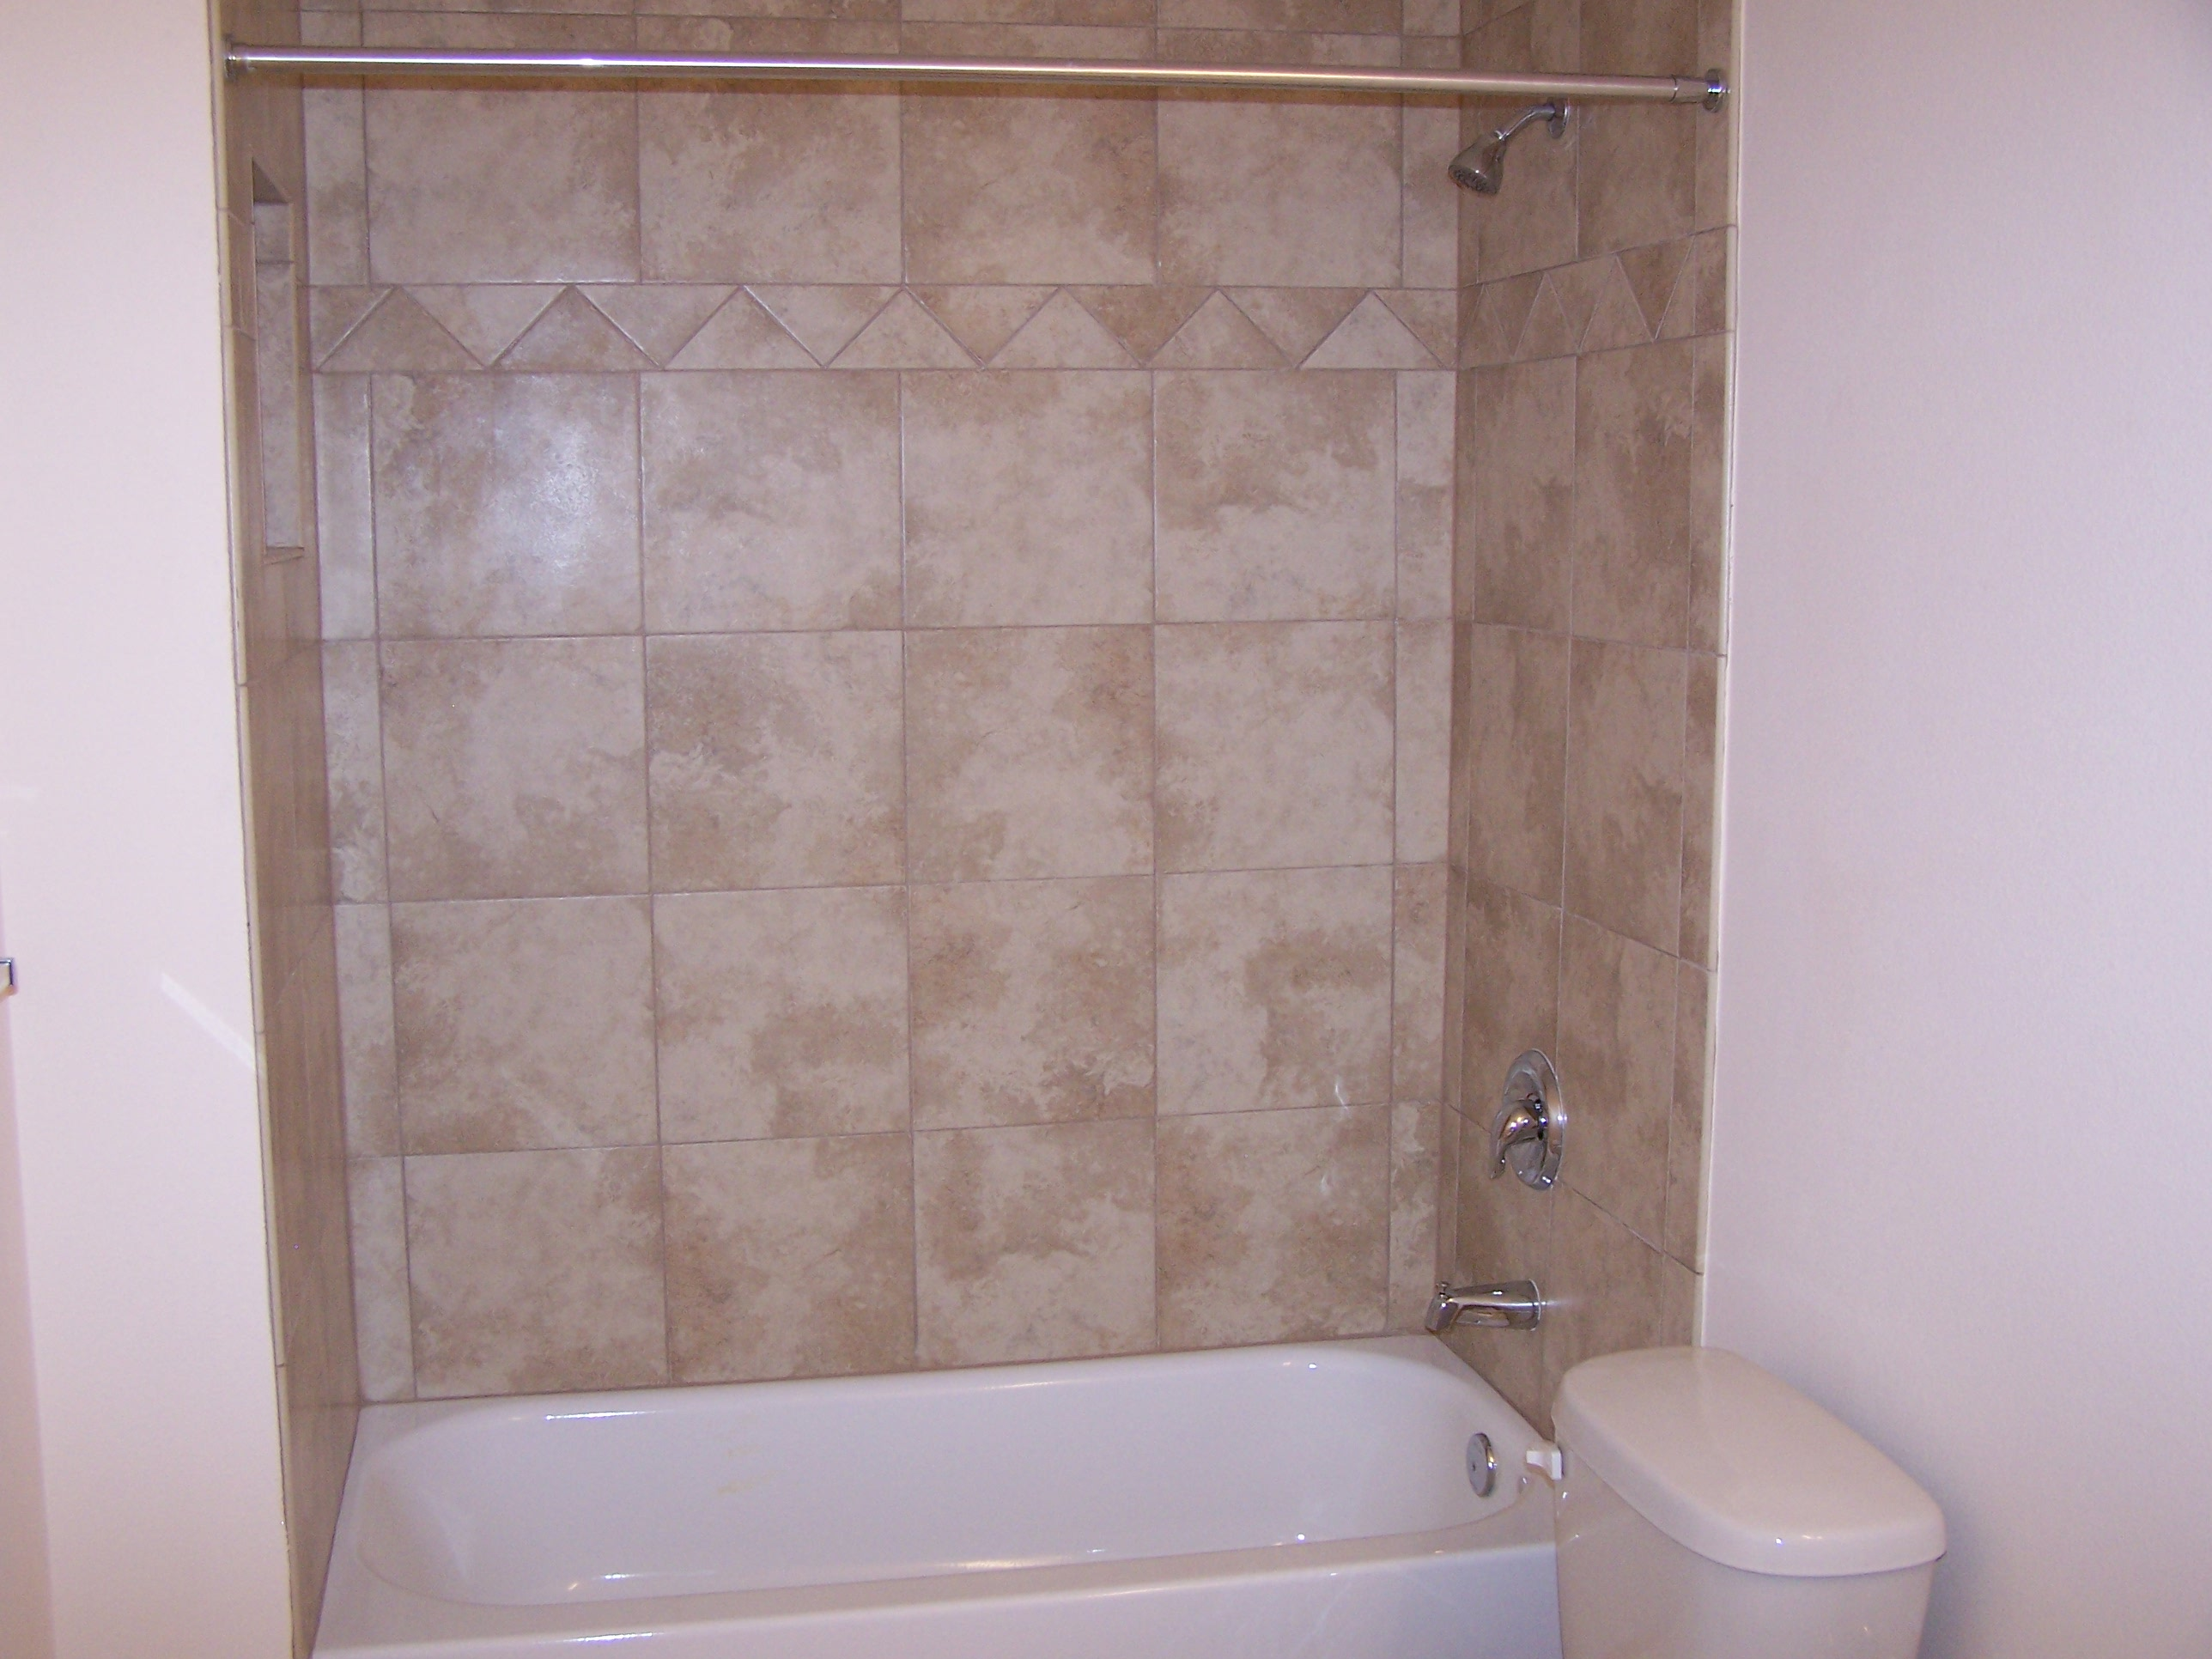 ceramic-tile-decorative-bath-enclosure